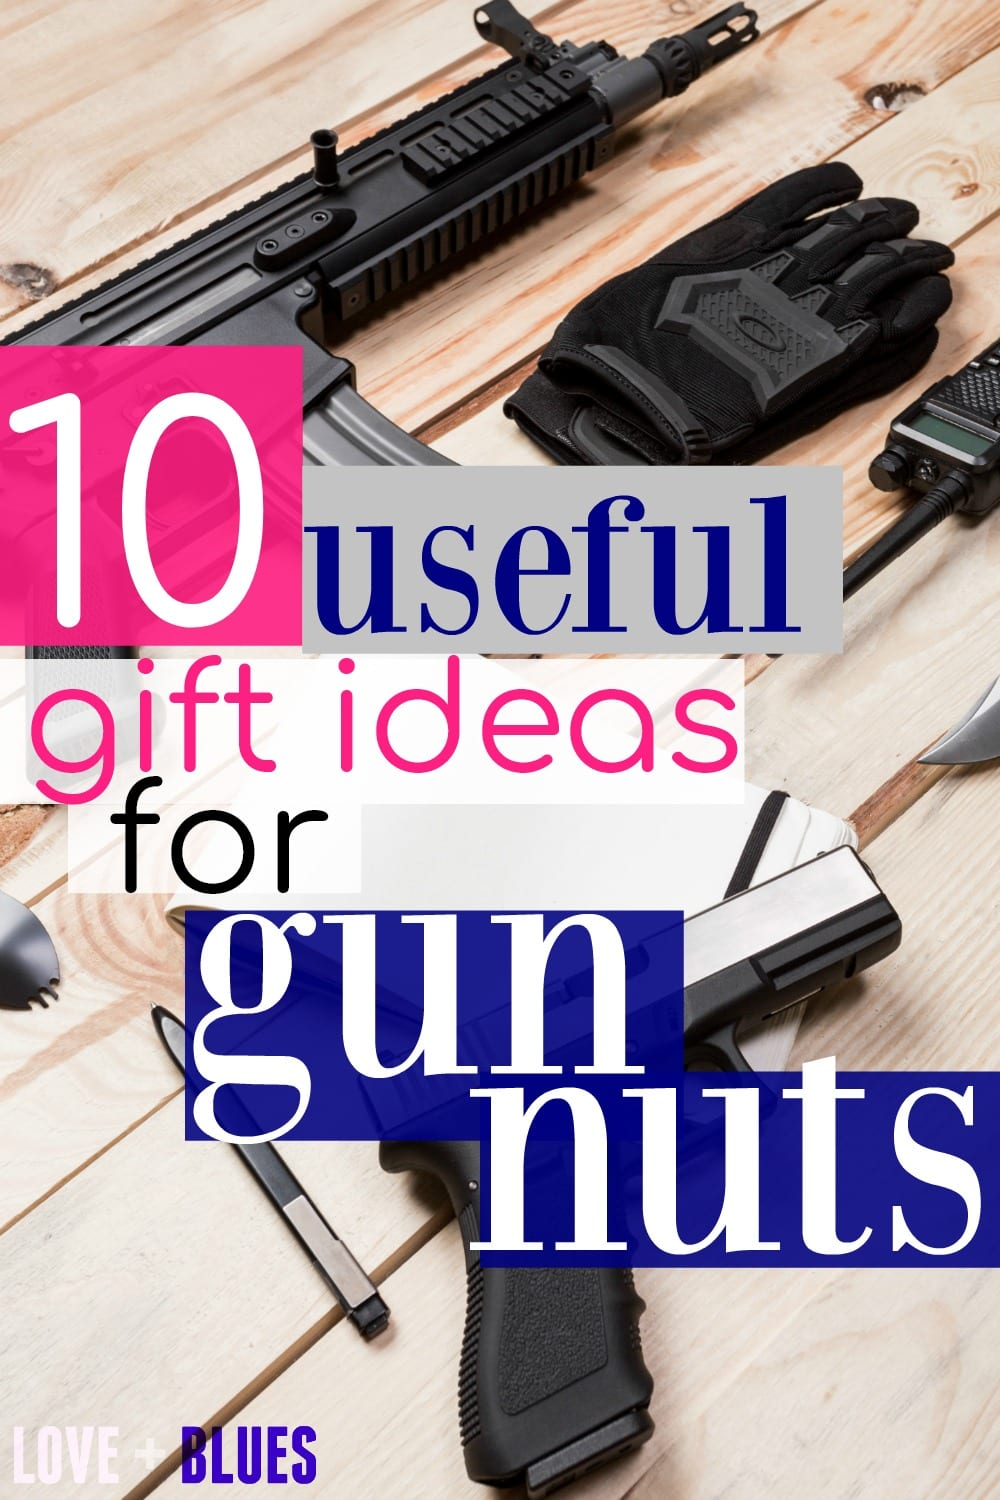 Great ideas! My husband is super into guns, and I'd love to get him a new one, but it's just not in the budget. These fit a little better and are super useful: 10 Useful Gift Ideas for Gun Nuts